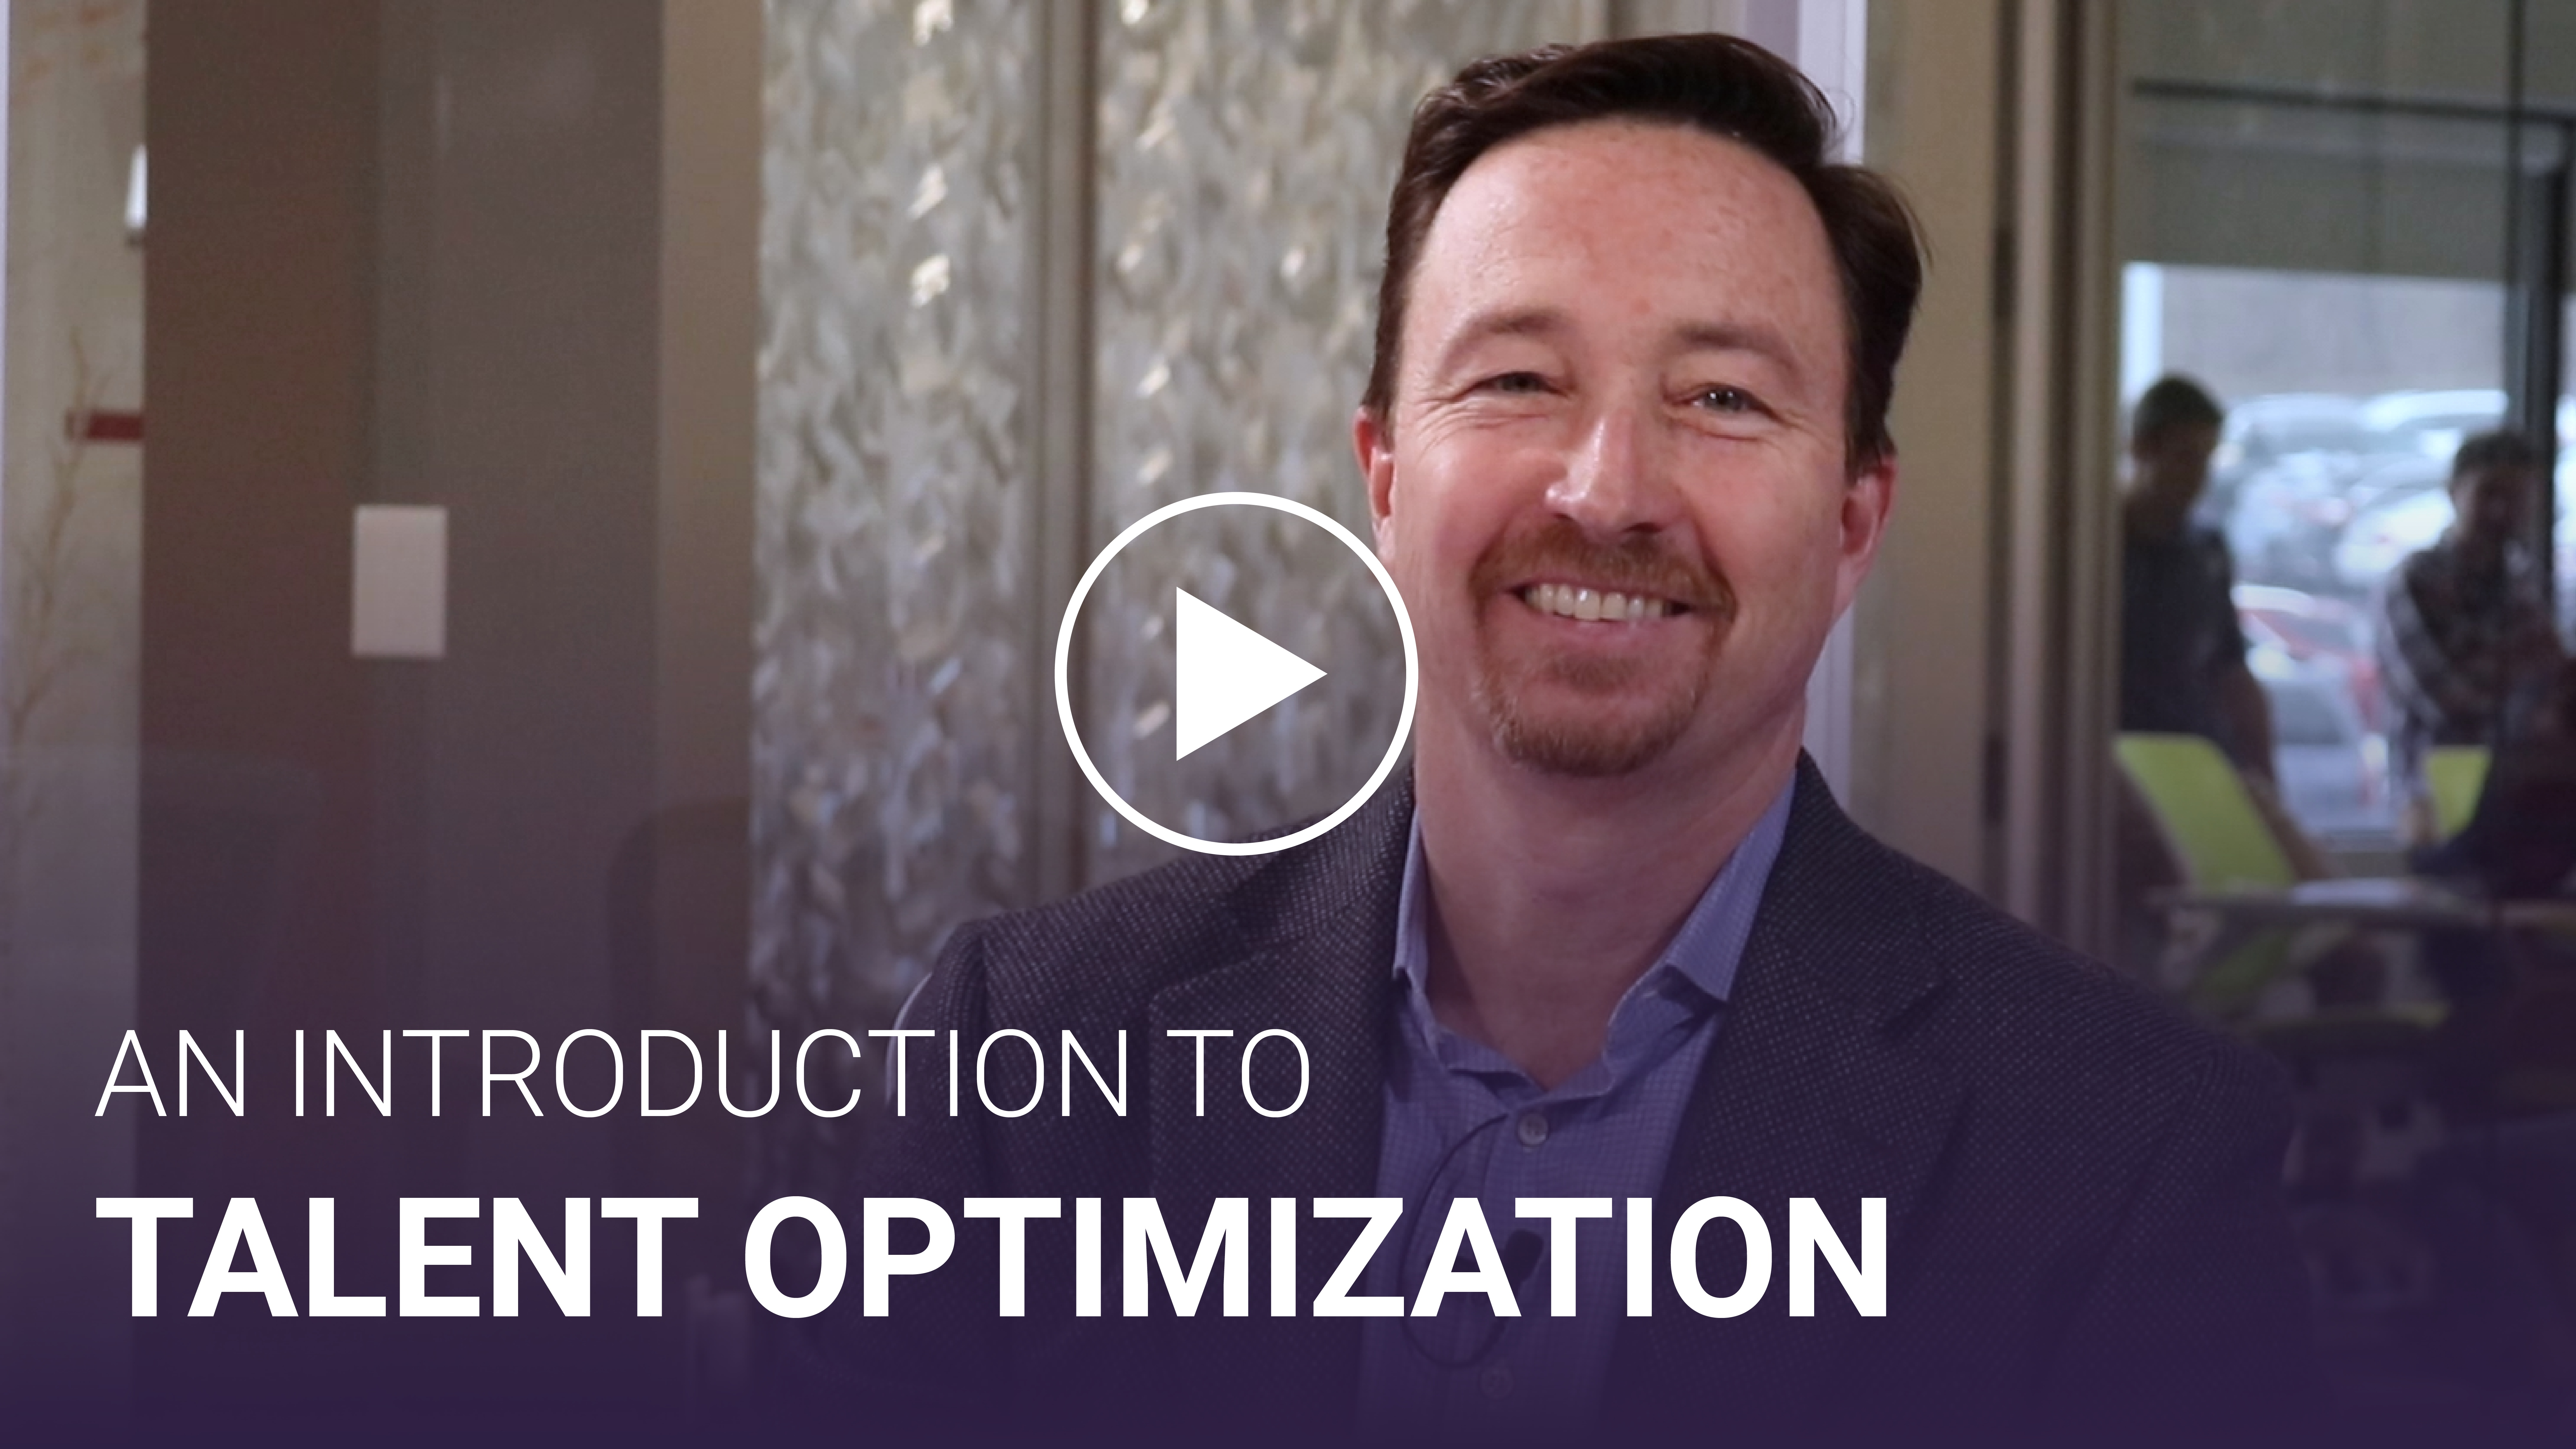 Introduction to Talent Optimization